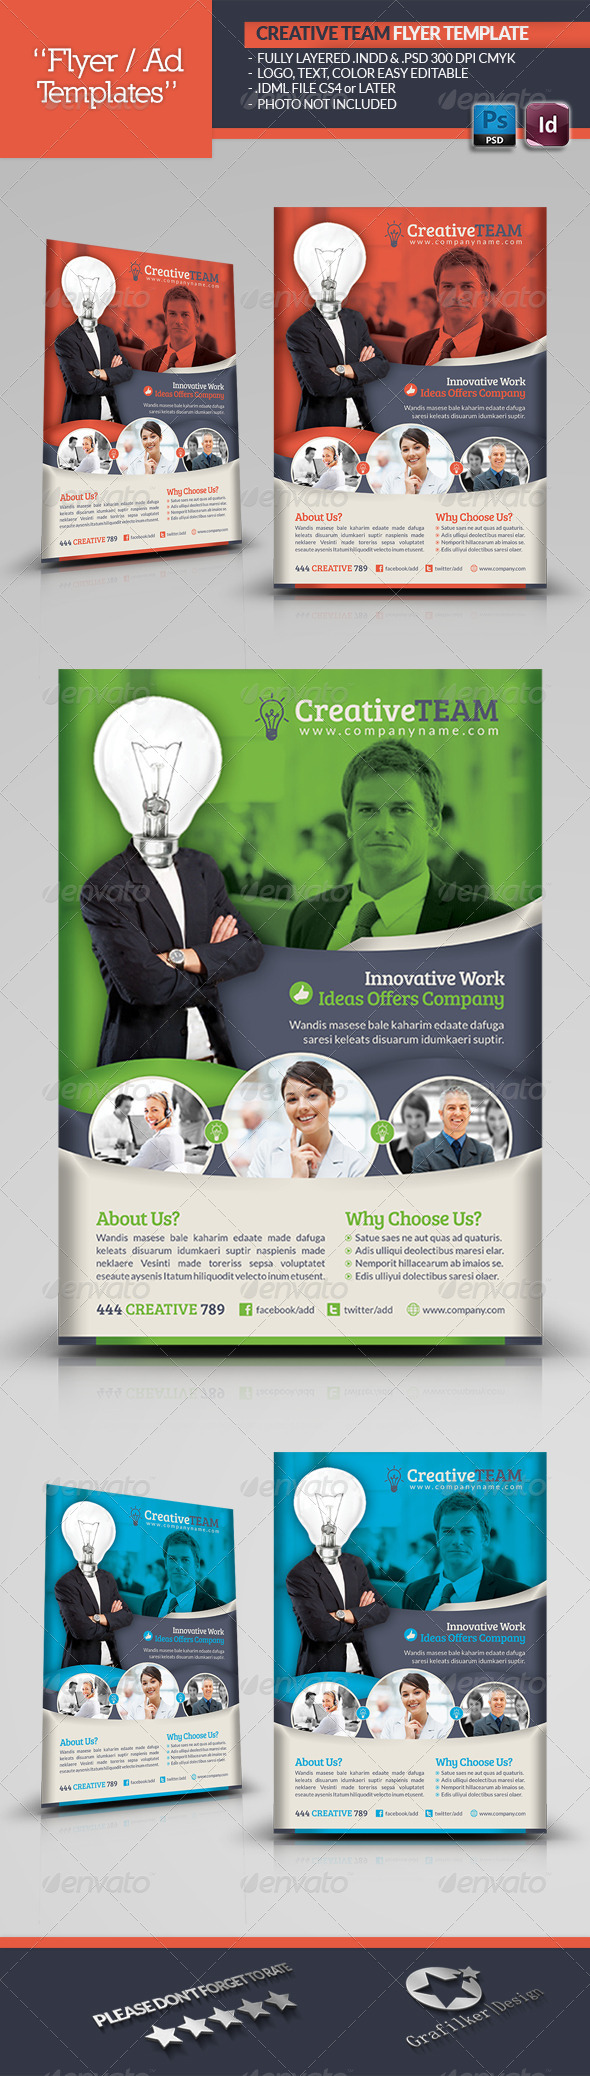 Creative Team Flyer Template - Corporate Flyers